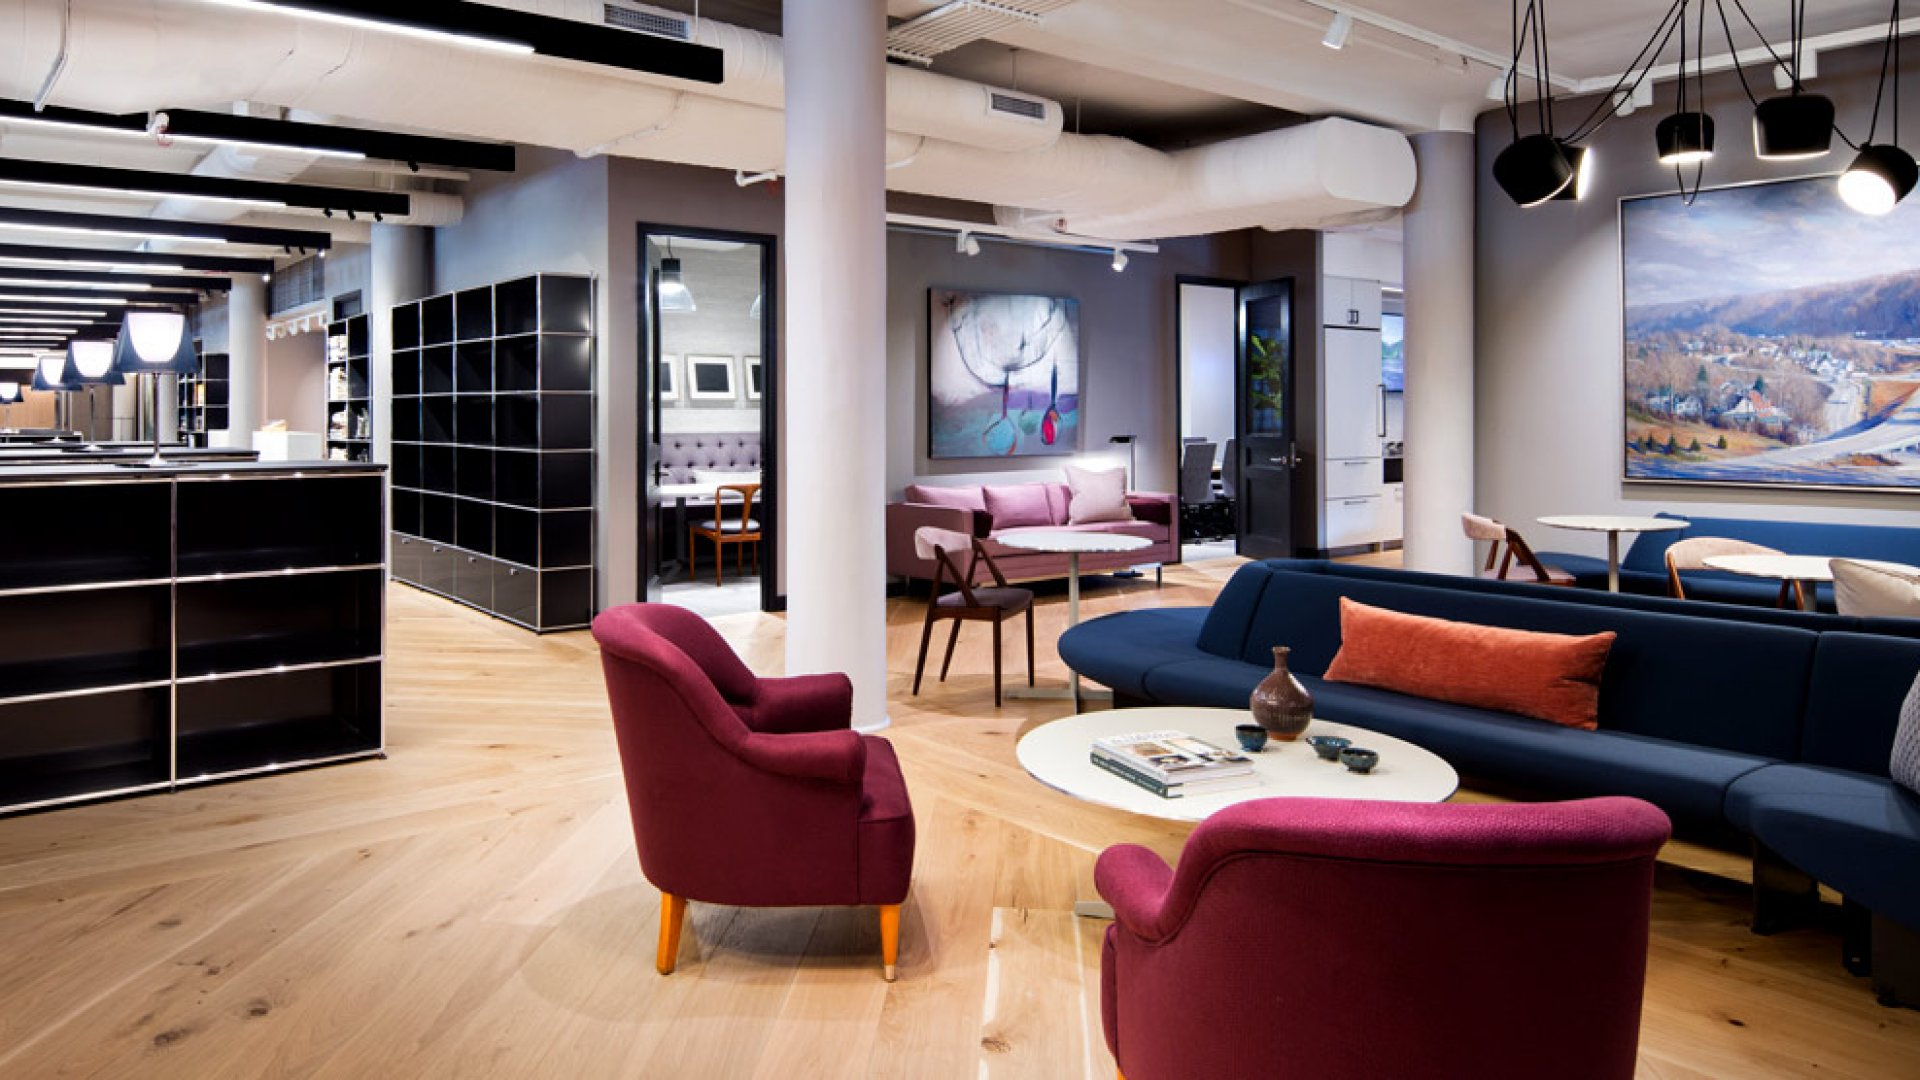 This Startup Will Be Your HR Department--and Give You a Park Avenue Address